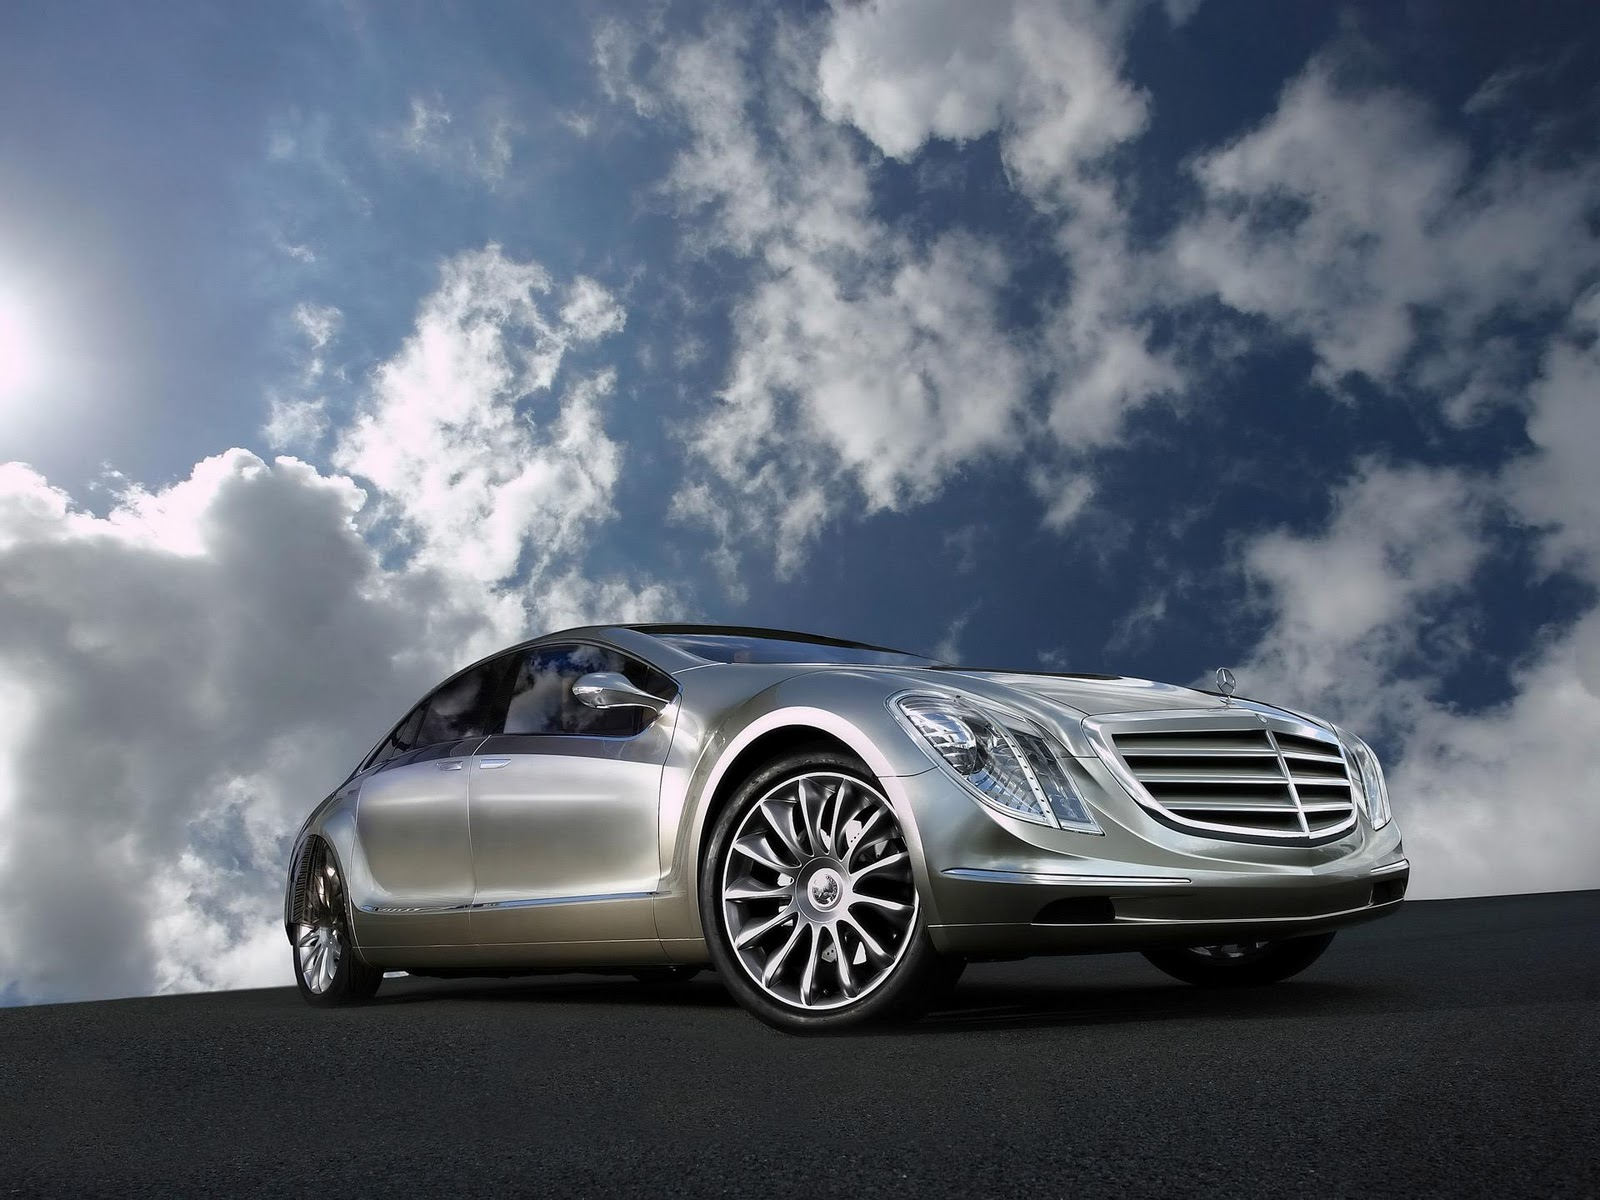 Mercedes benz wallpaper desktop cars n bikes for Mercedes benz cars images